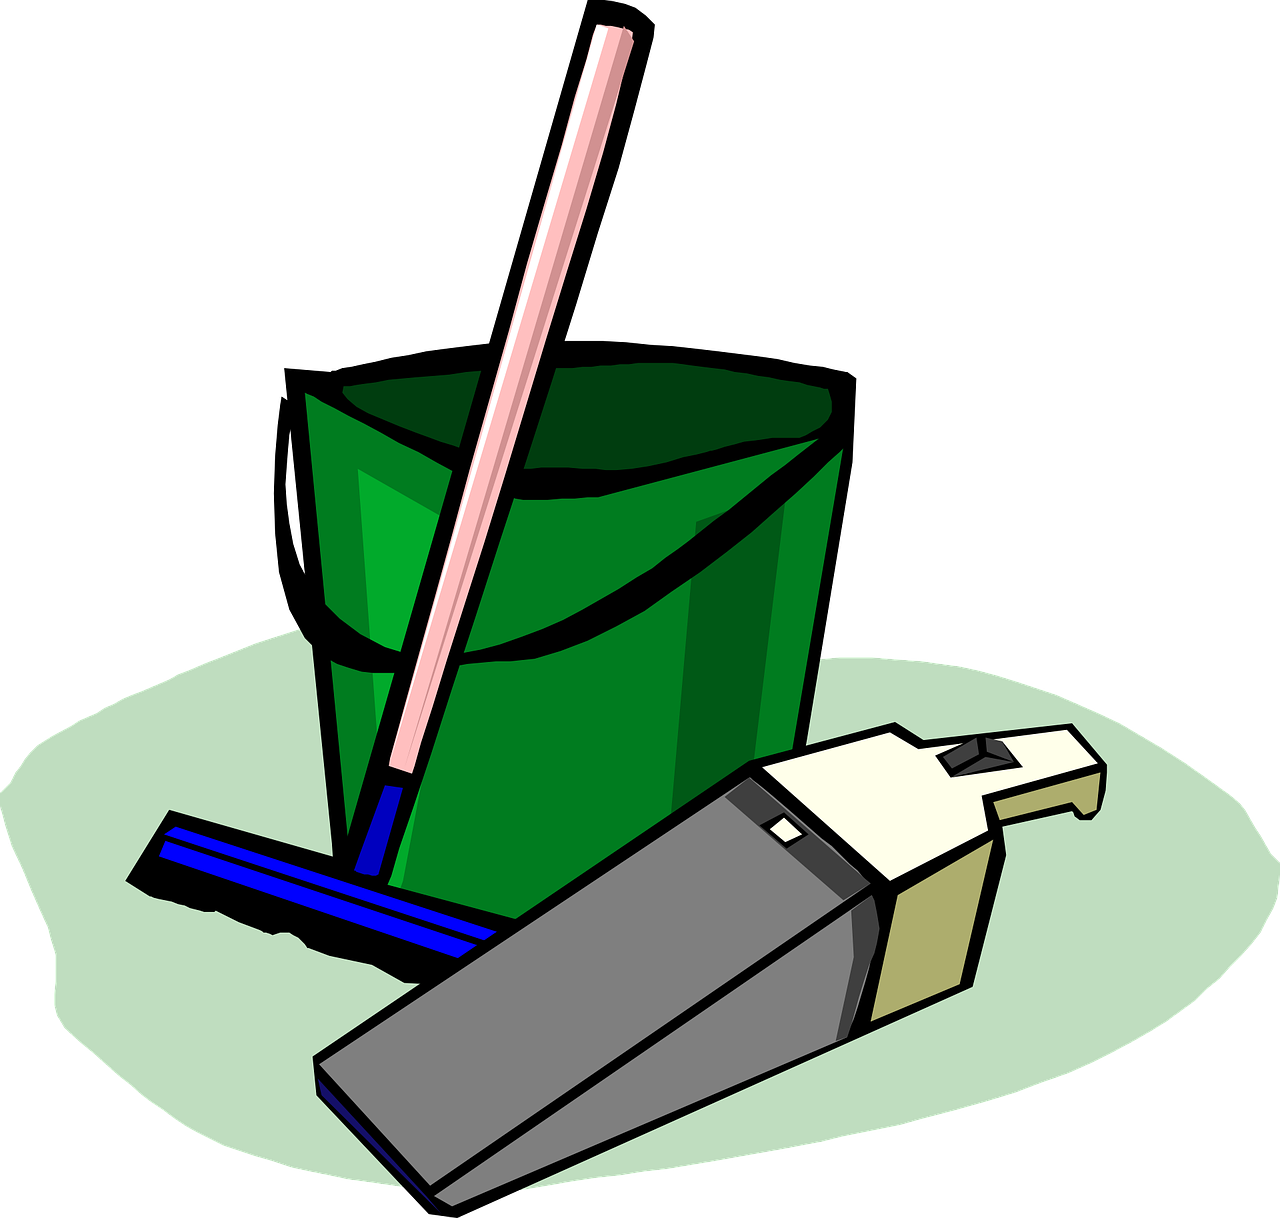 Up at getdrawings com. Clean clipart general cleaning